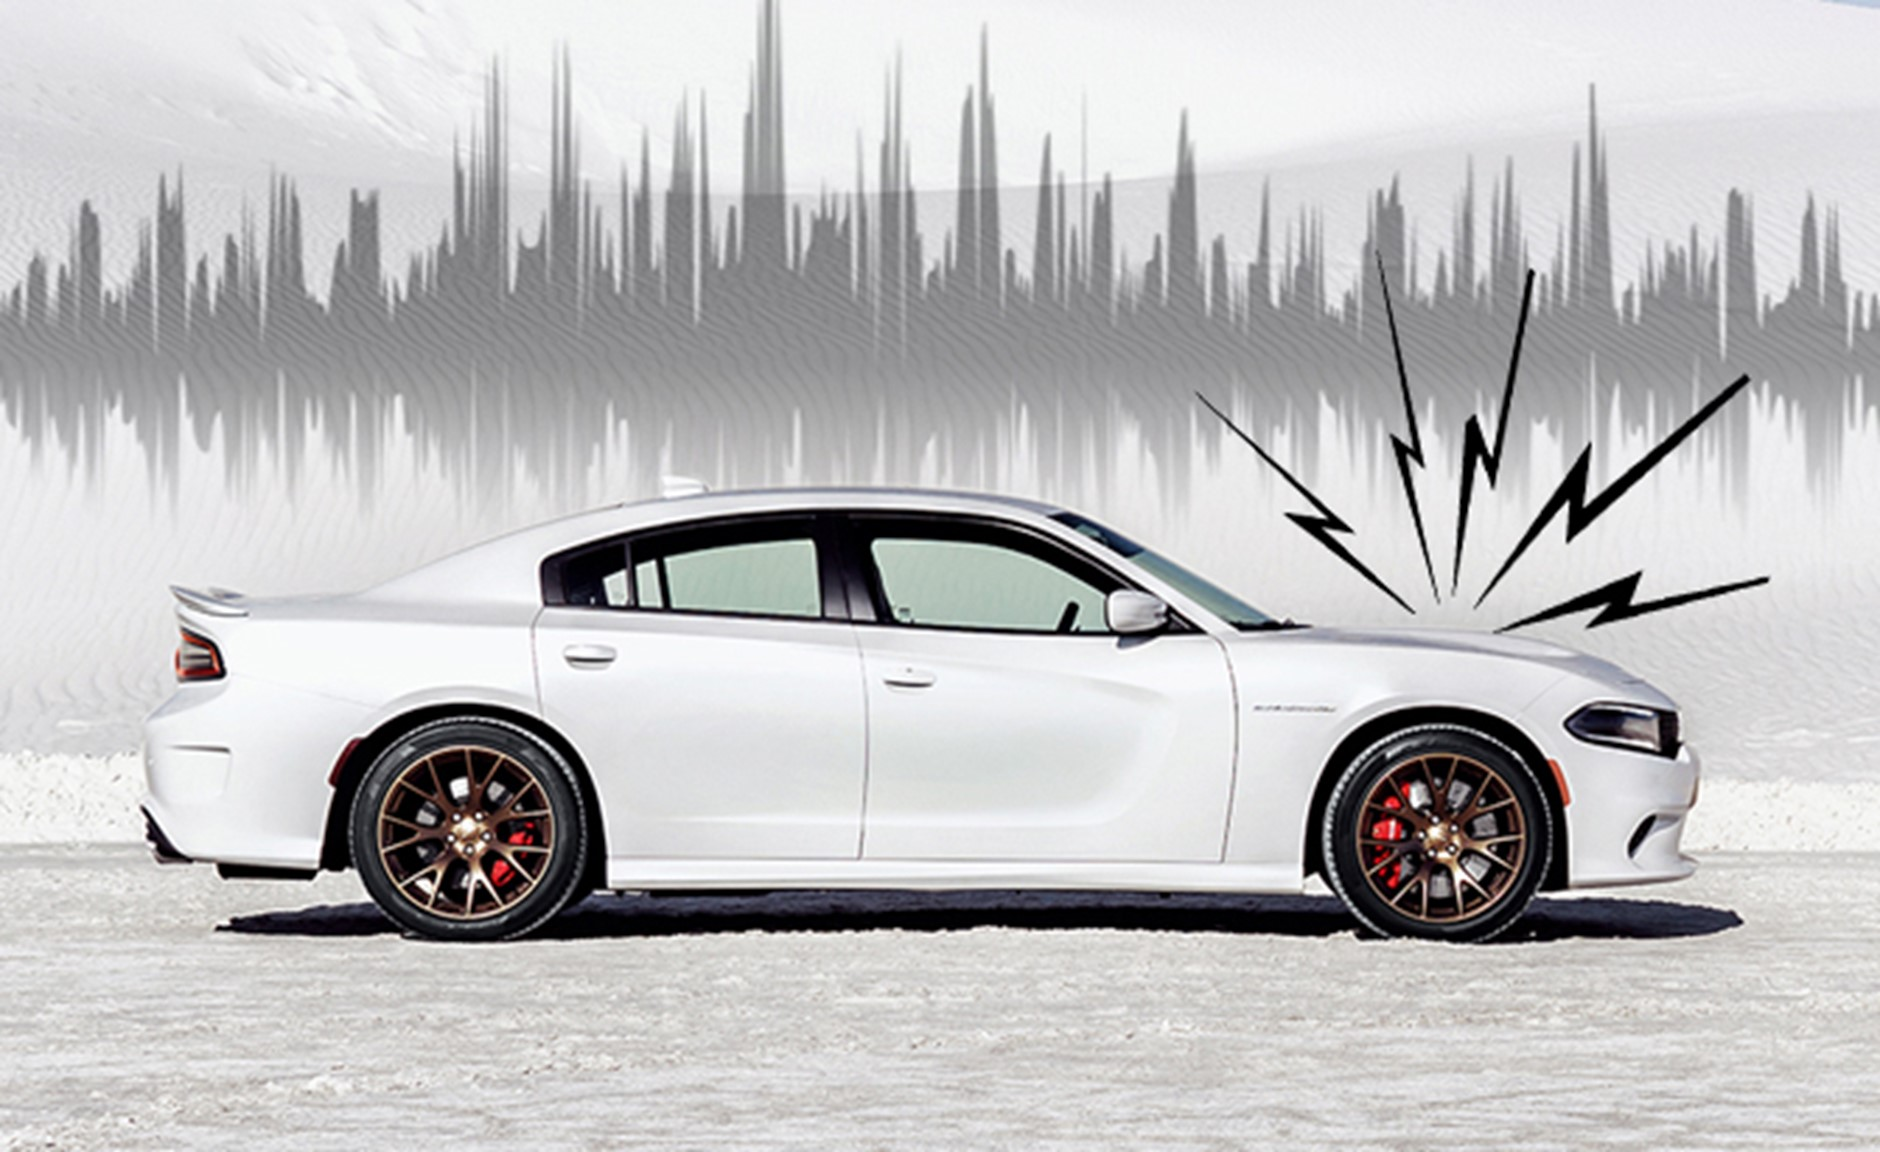 A white car with abstract lines indicating a noise emitting from the bonnet